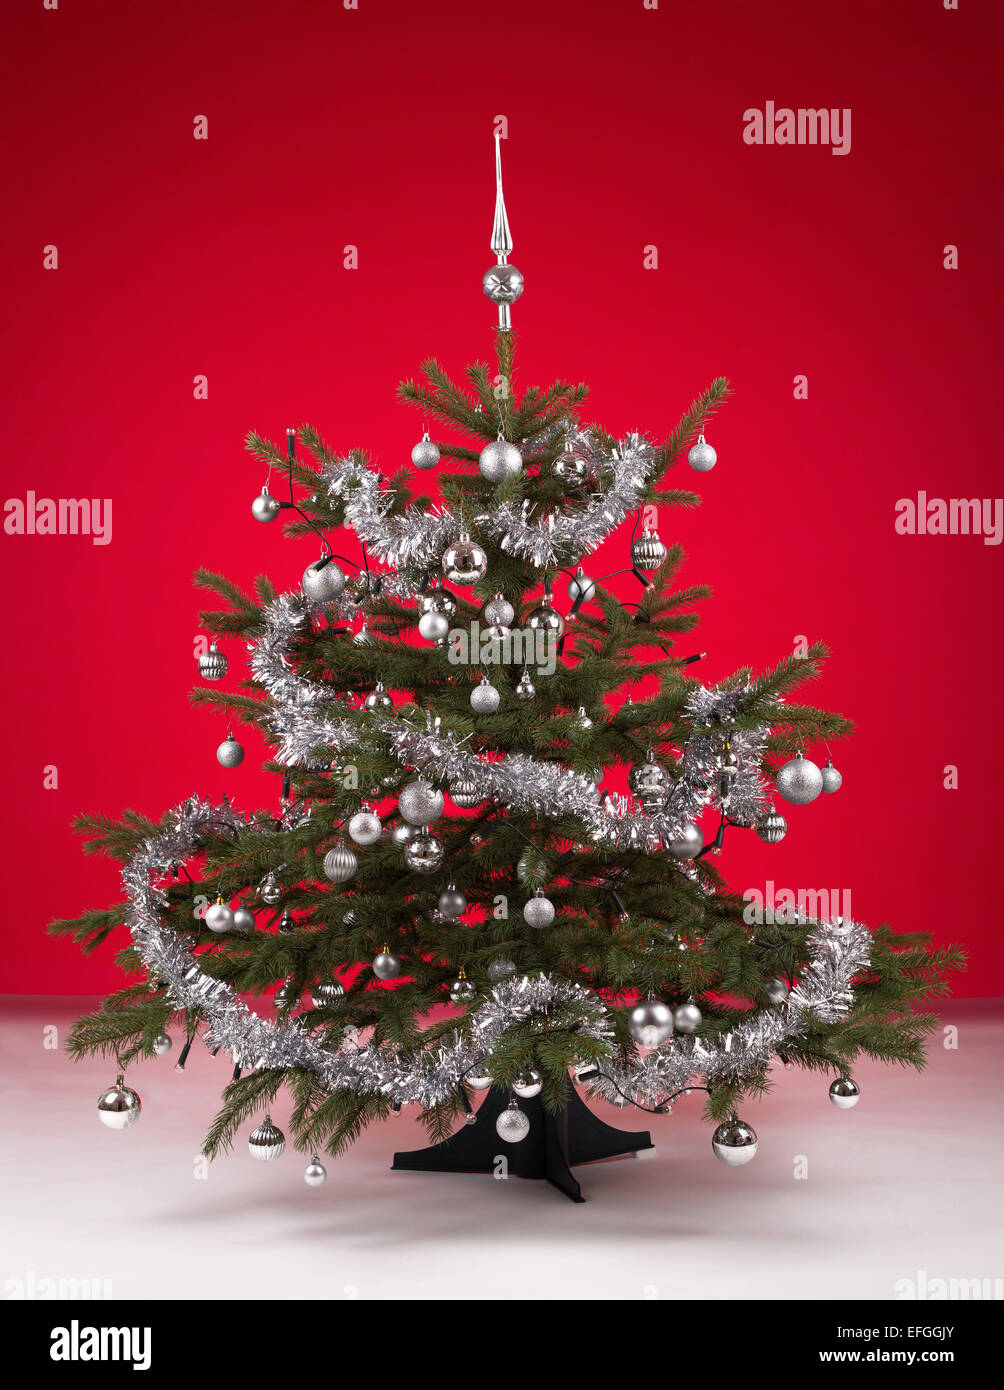 Decorated Christmas Tree With Silver Balls On Red